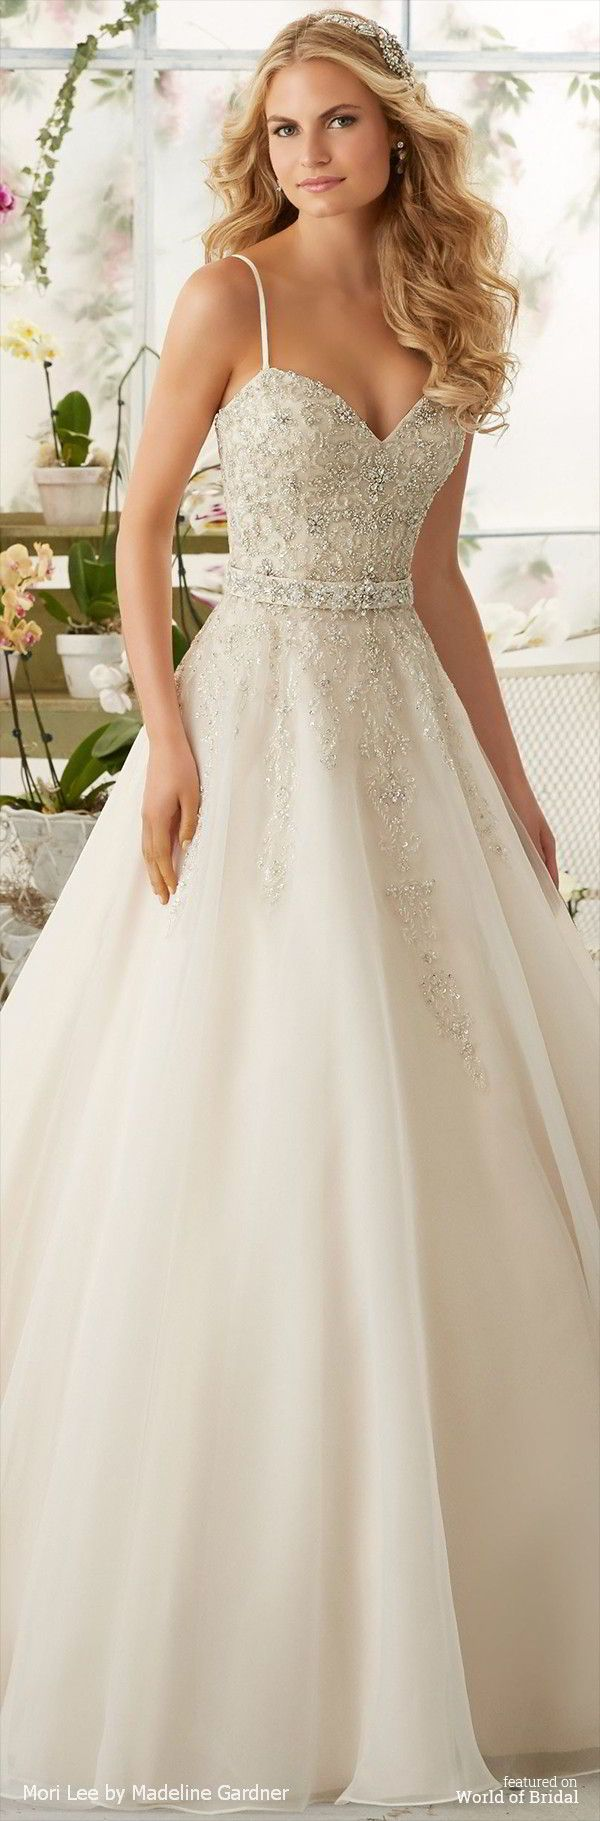 Crystal Beaded Embroidery Cascades onto the Organza Ball Gown with Shoestring Straps